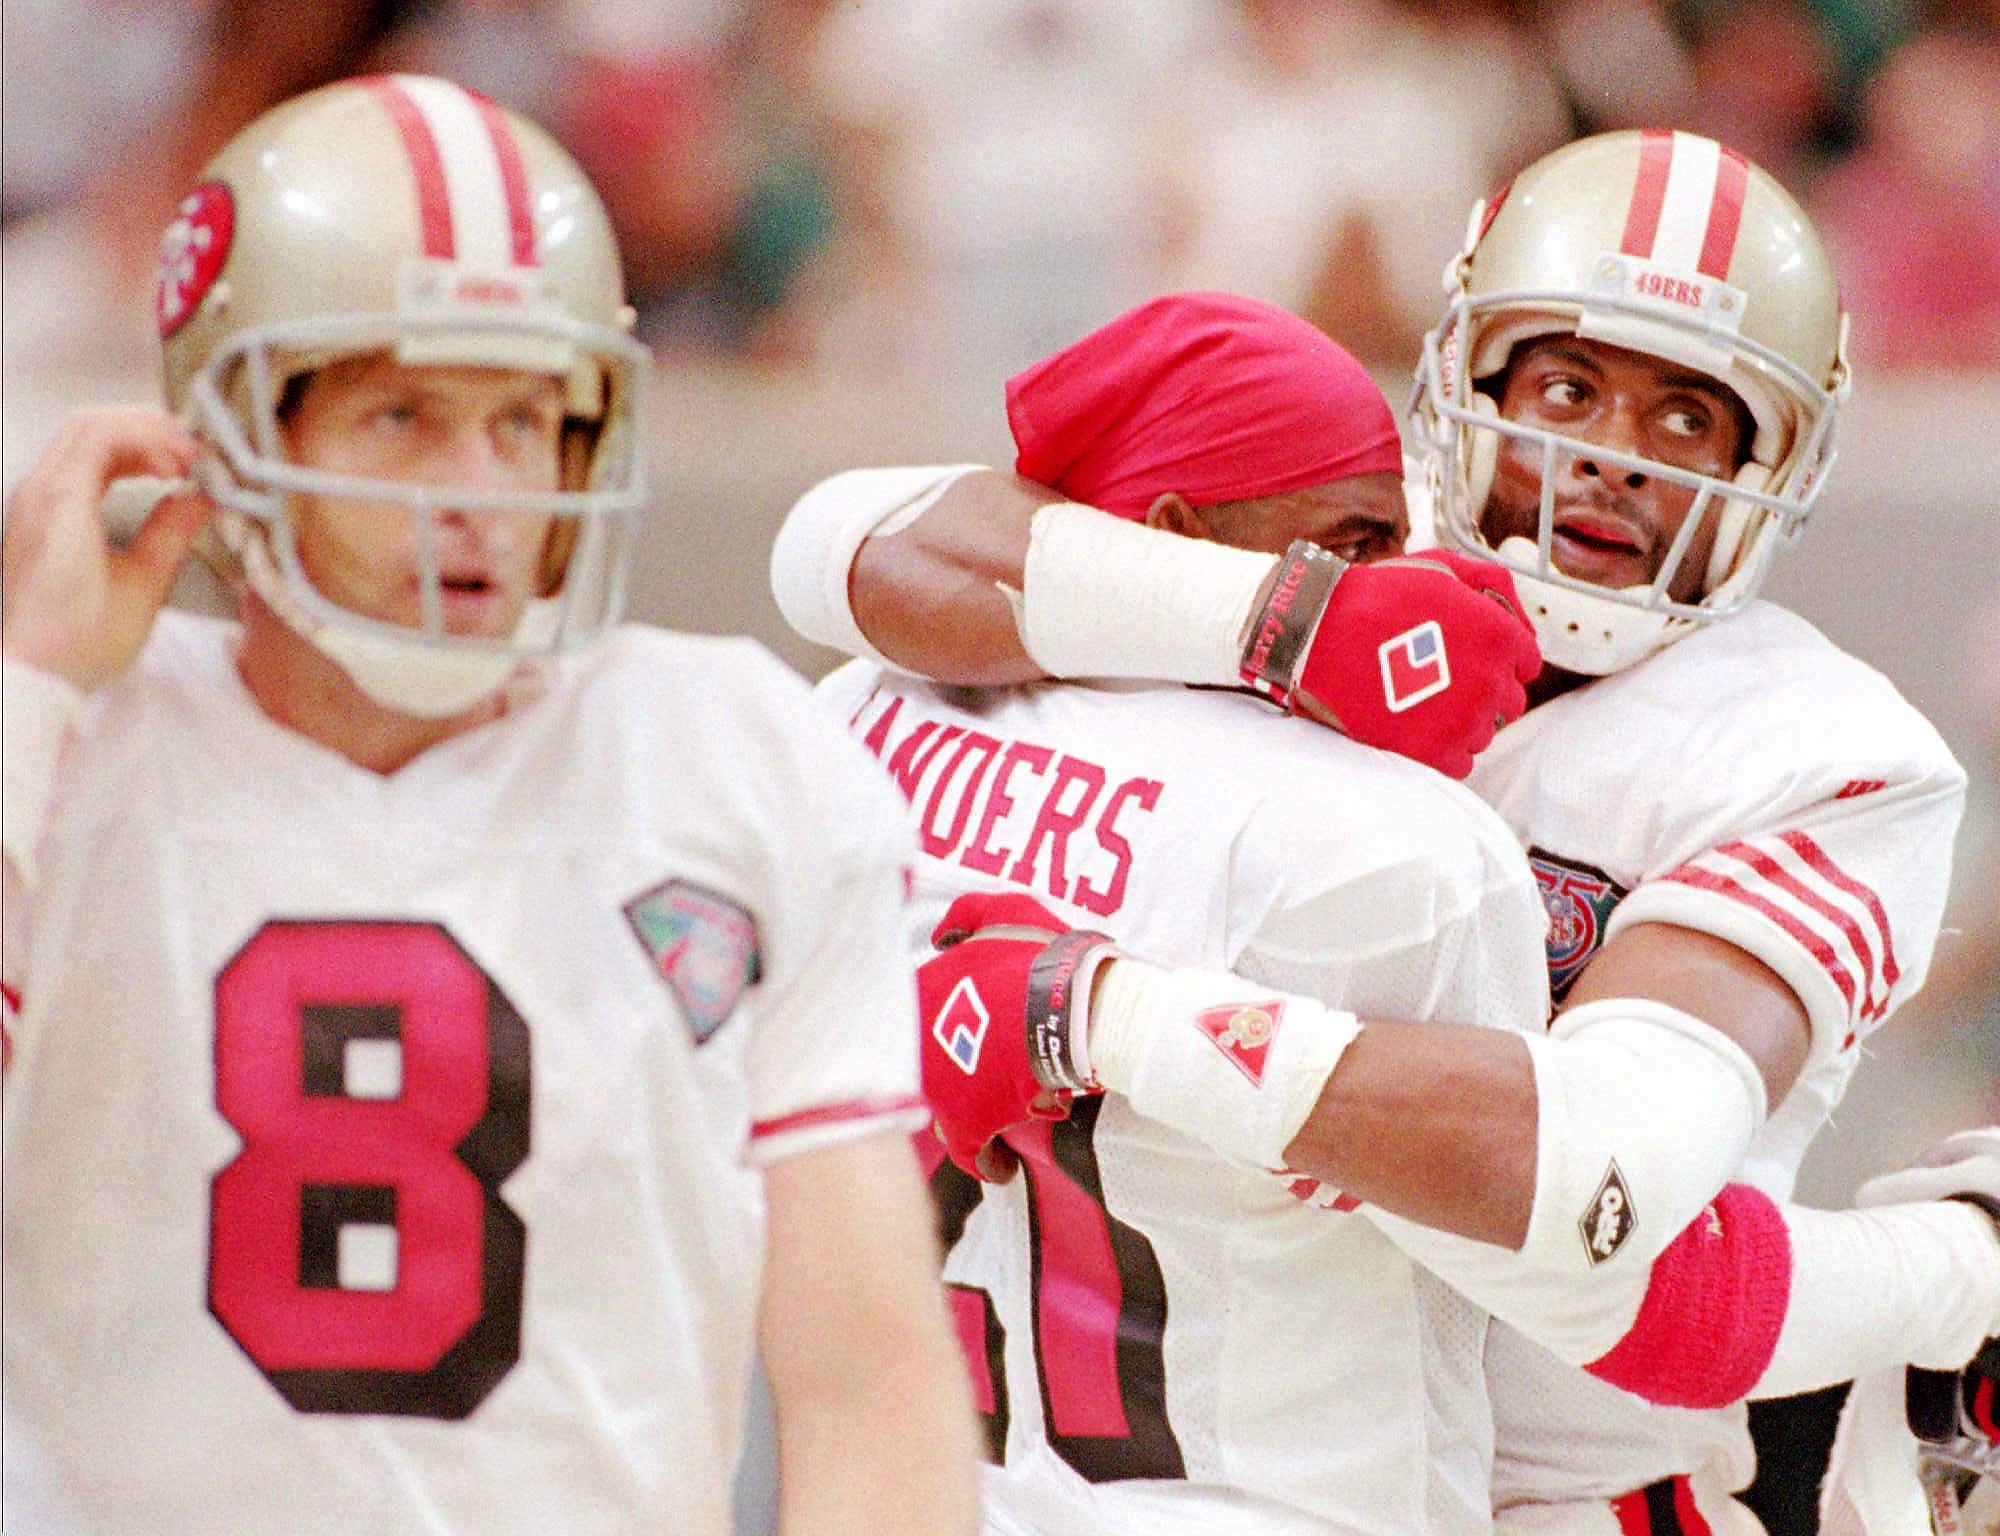 official photos f2cdd 55579 Jerry Rice parties like it's 1994 as 49ers unveil throwback ...